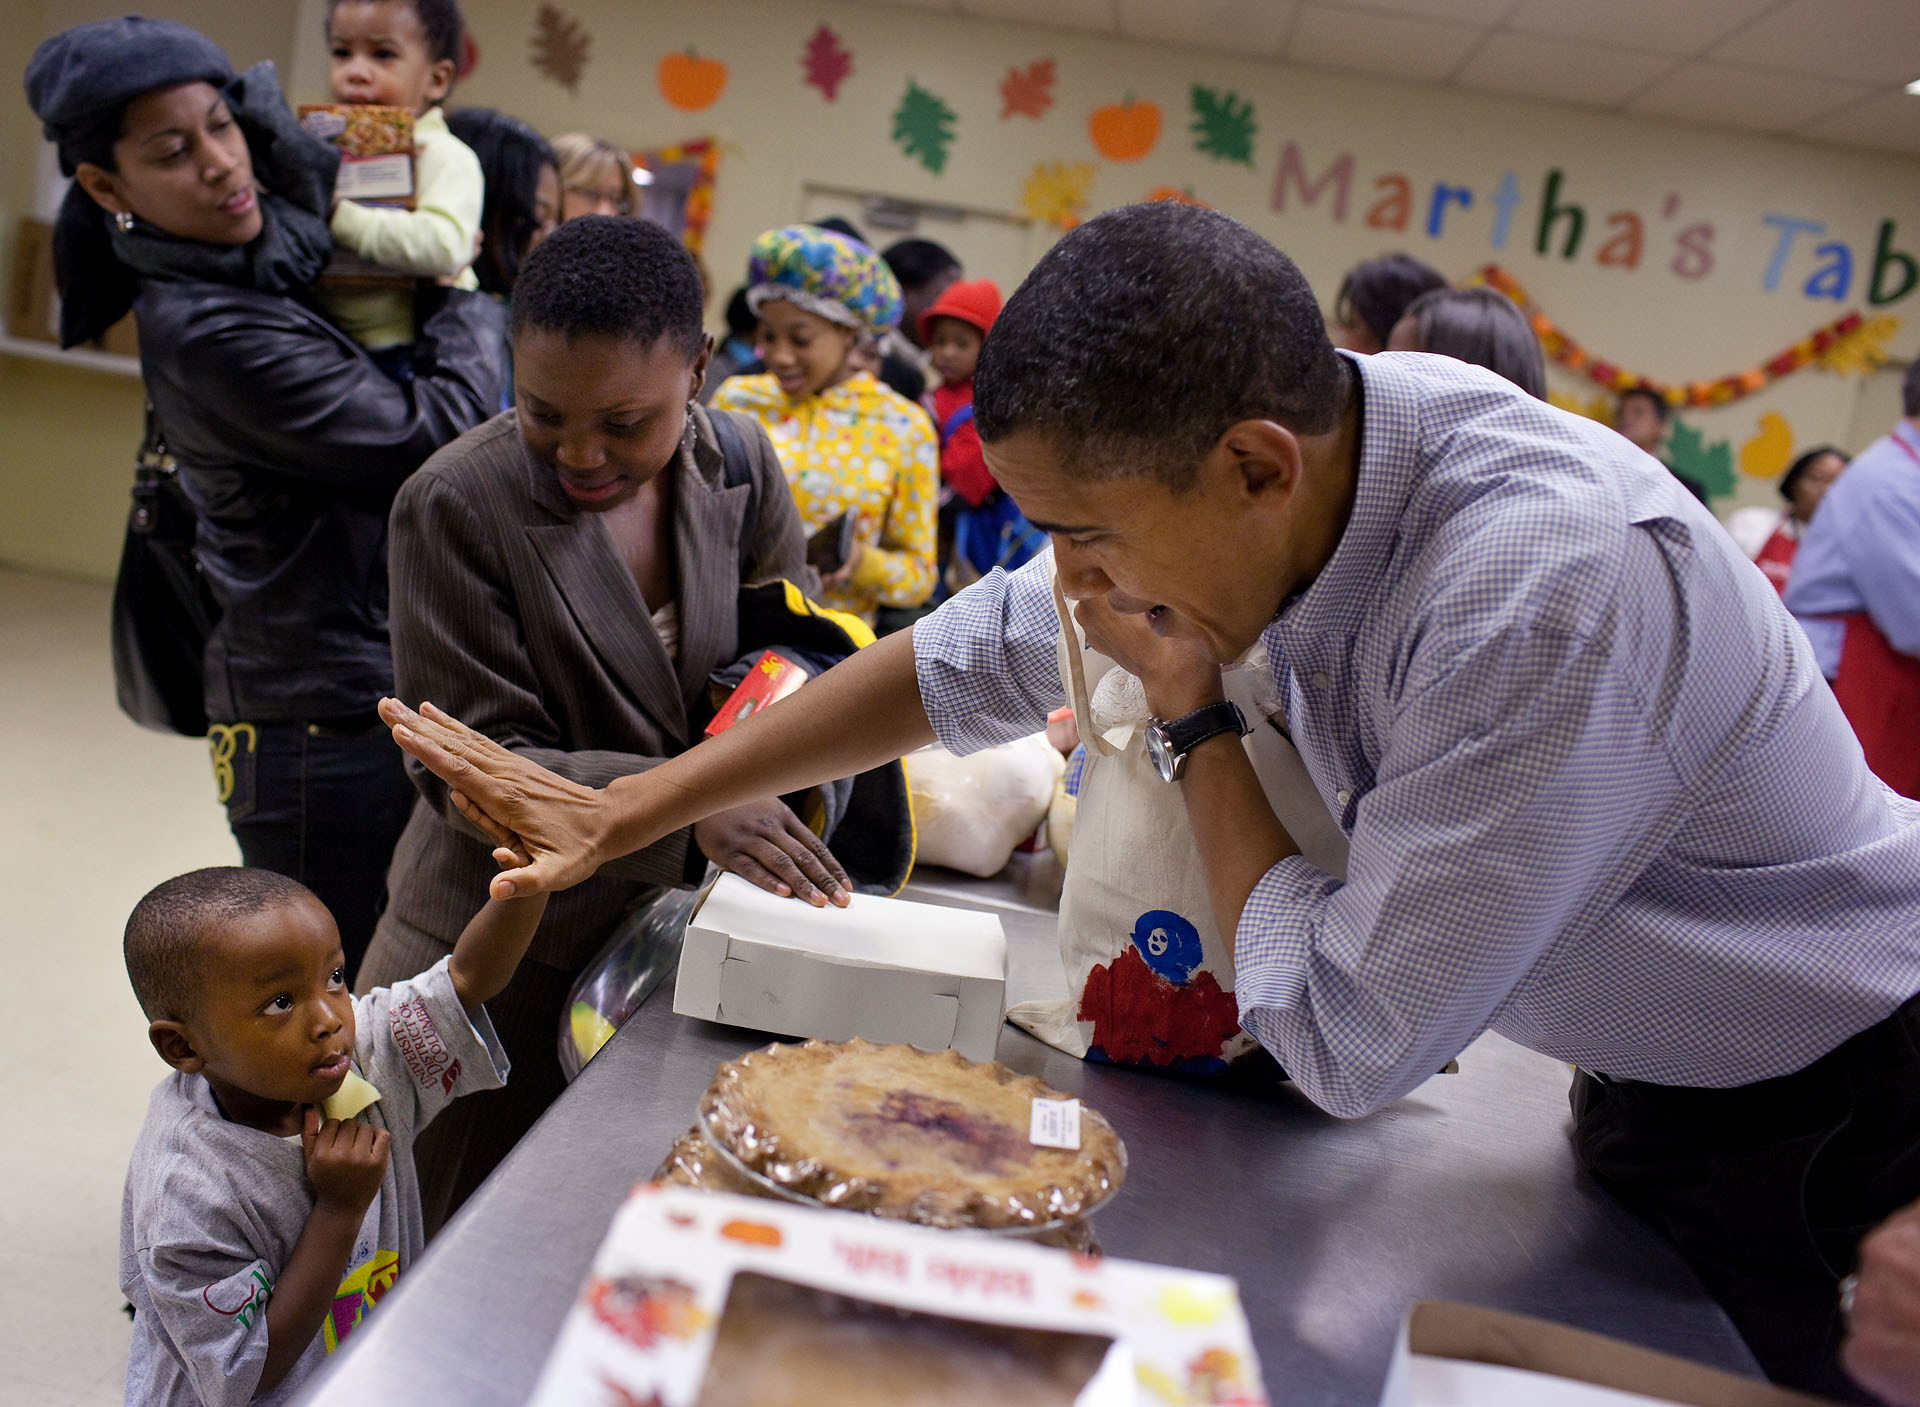 barak obama thanksgiving charity with high five.jpg